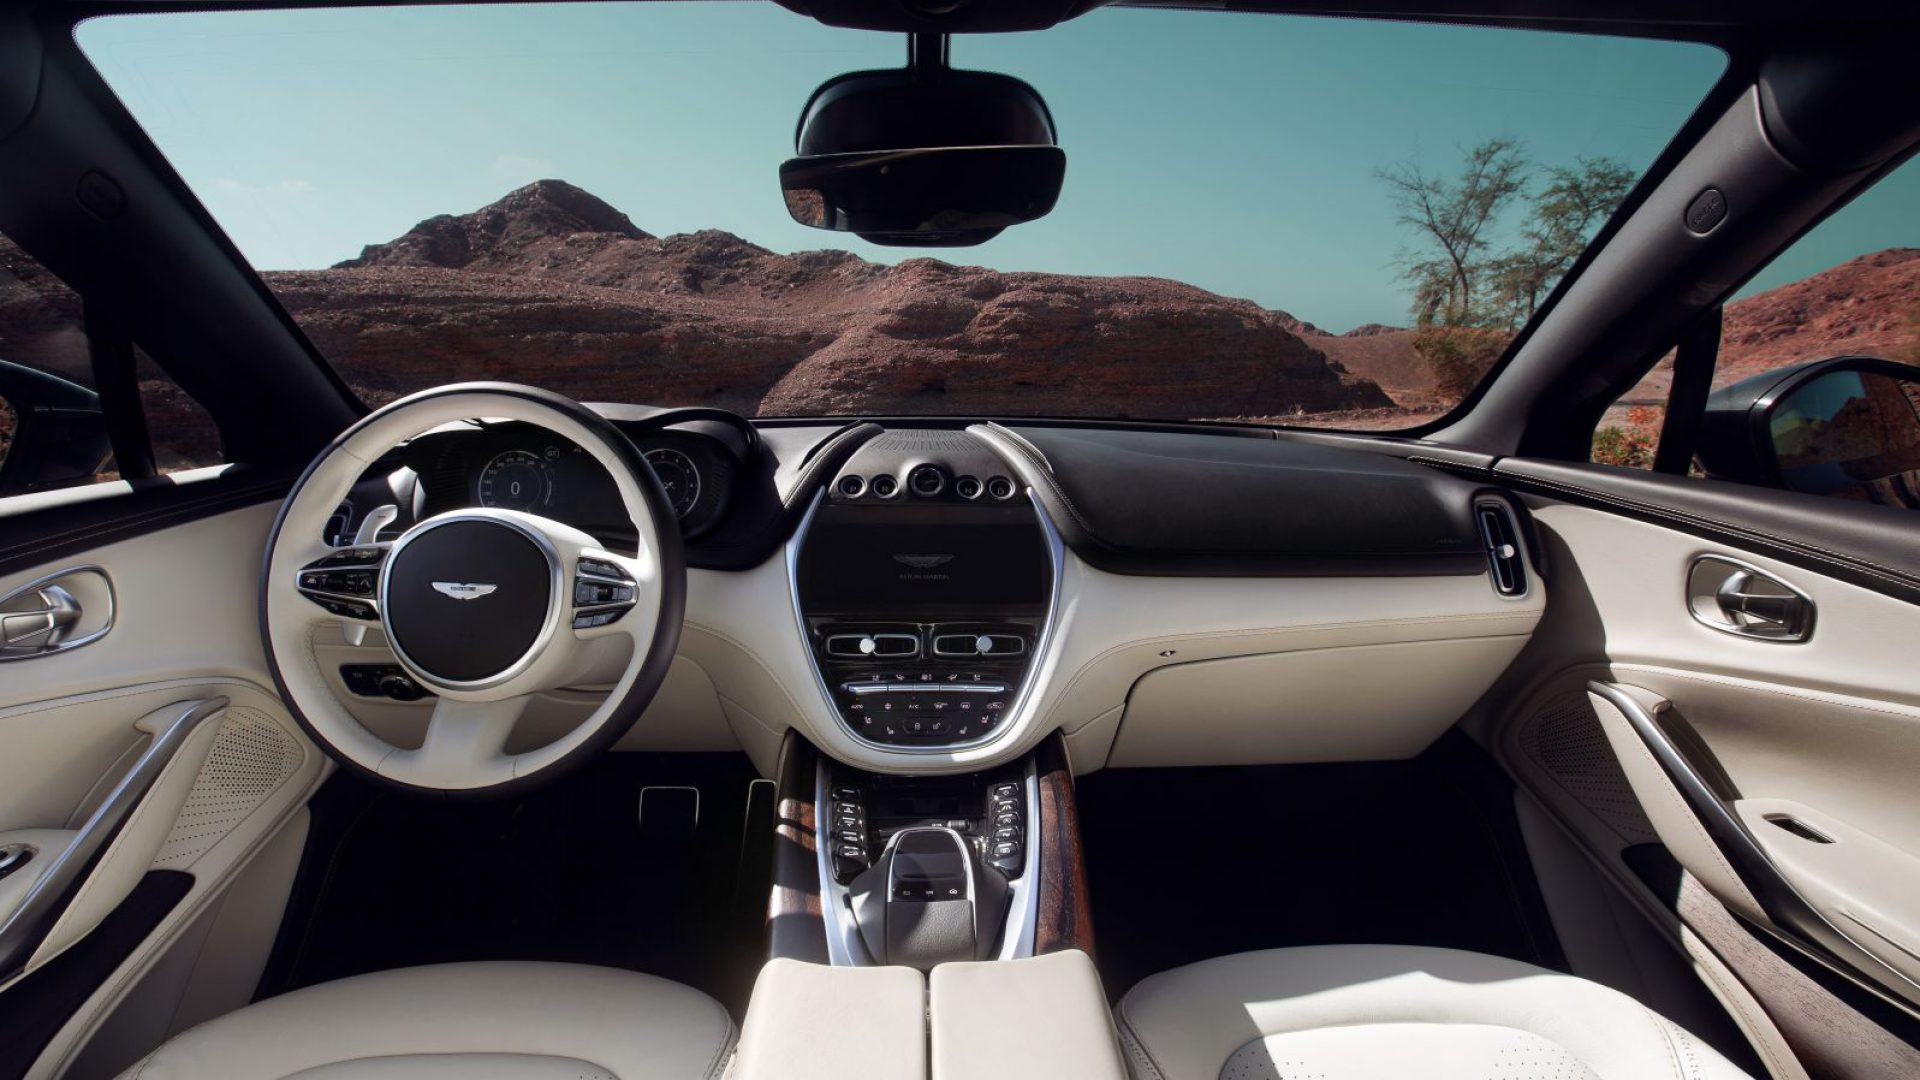 aston-martin-dbx-in-the-middle-east-8-jpg.